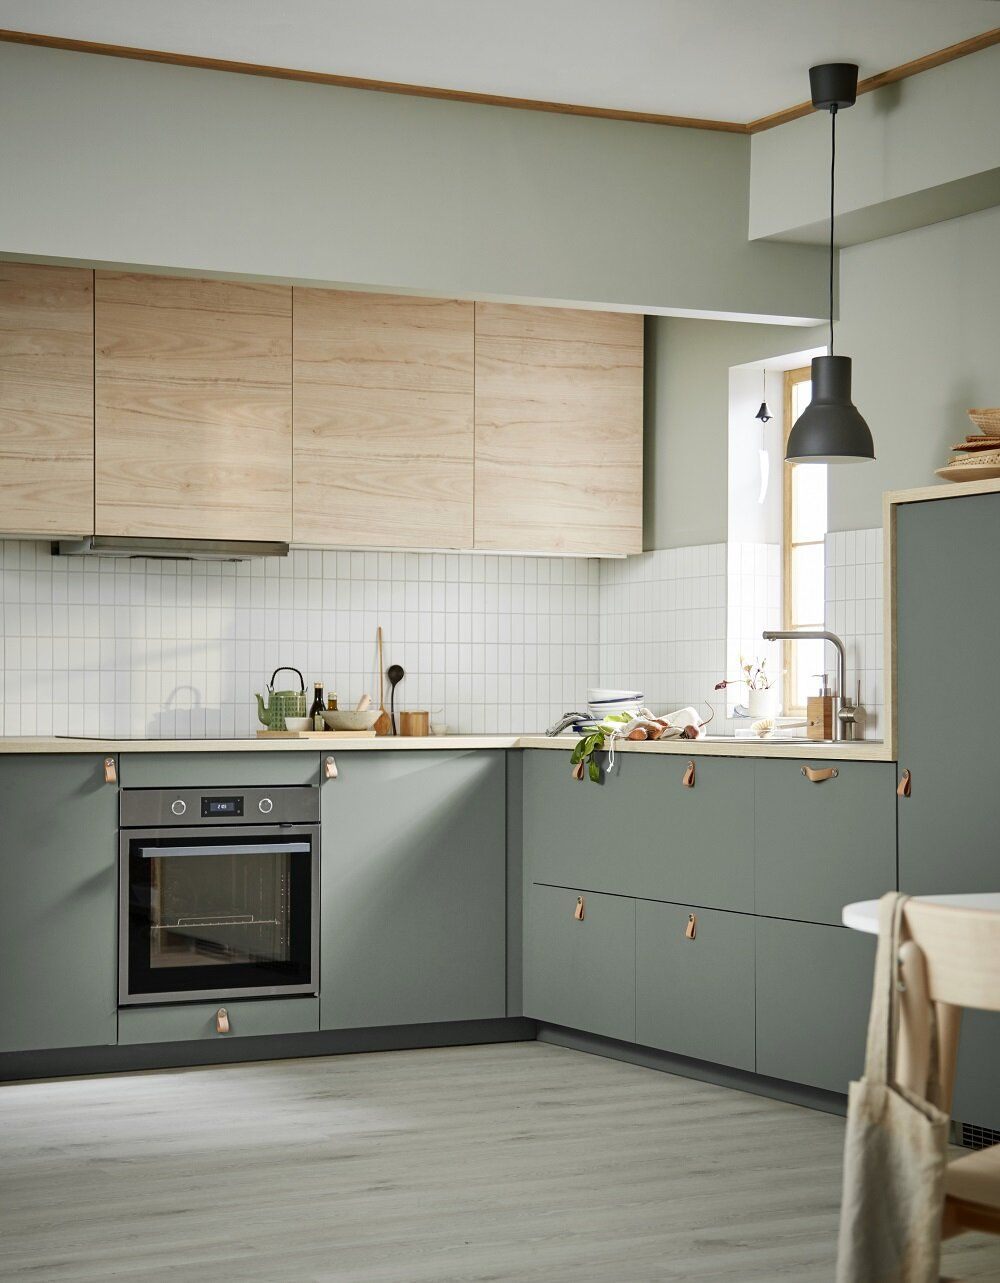 Pictures Of New Kitchens 2020